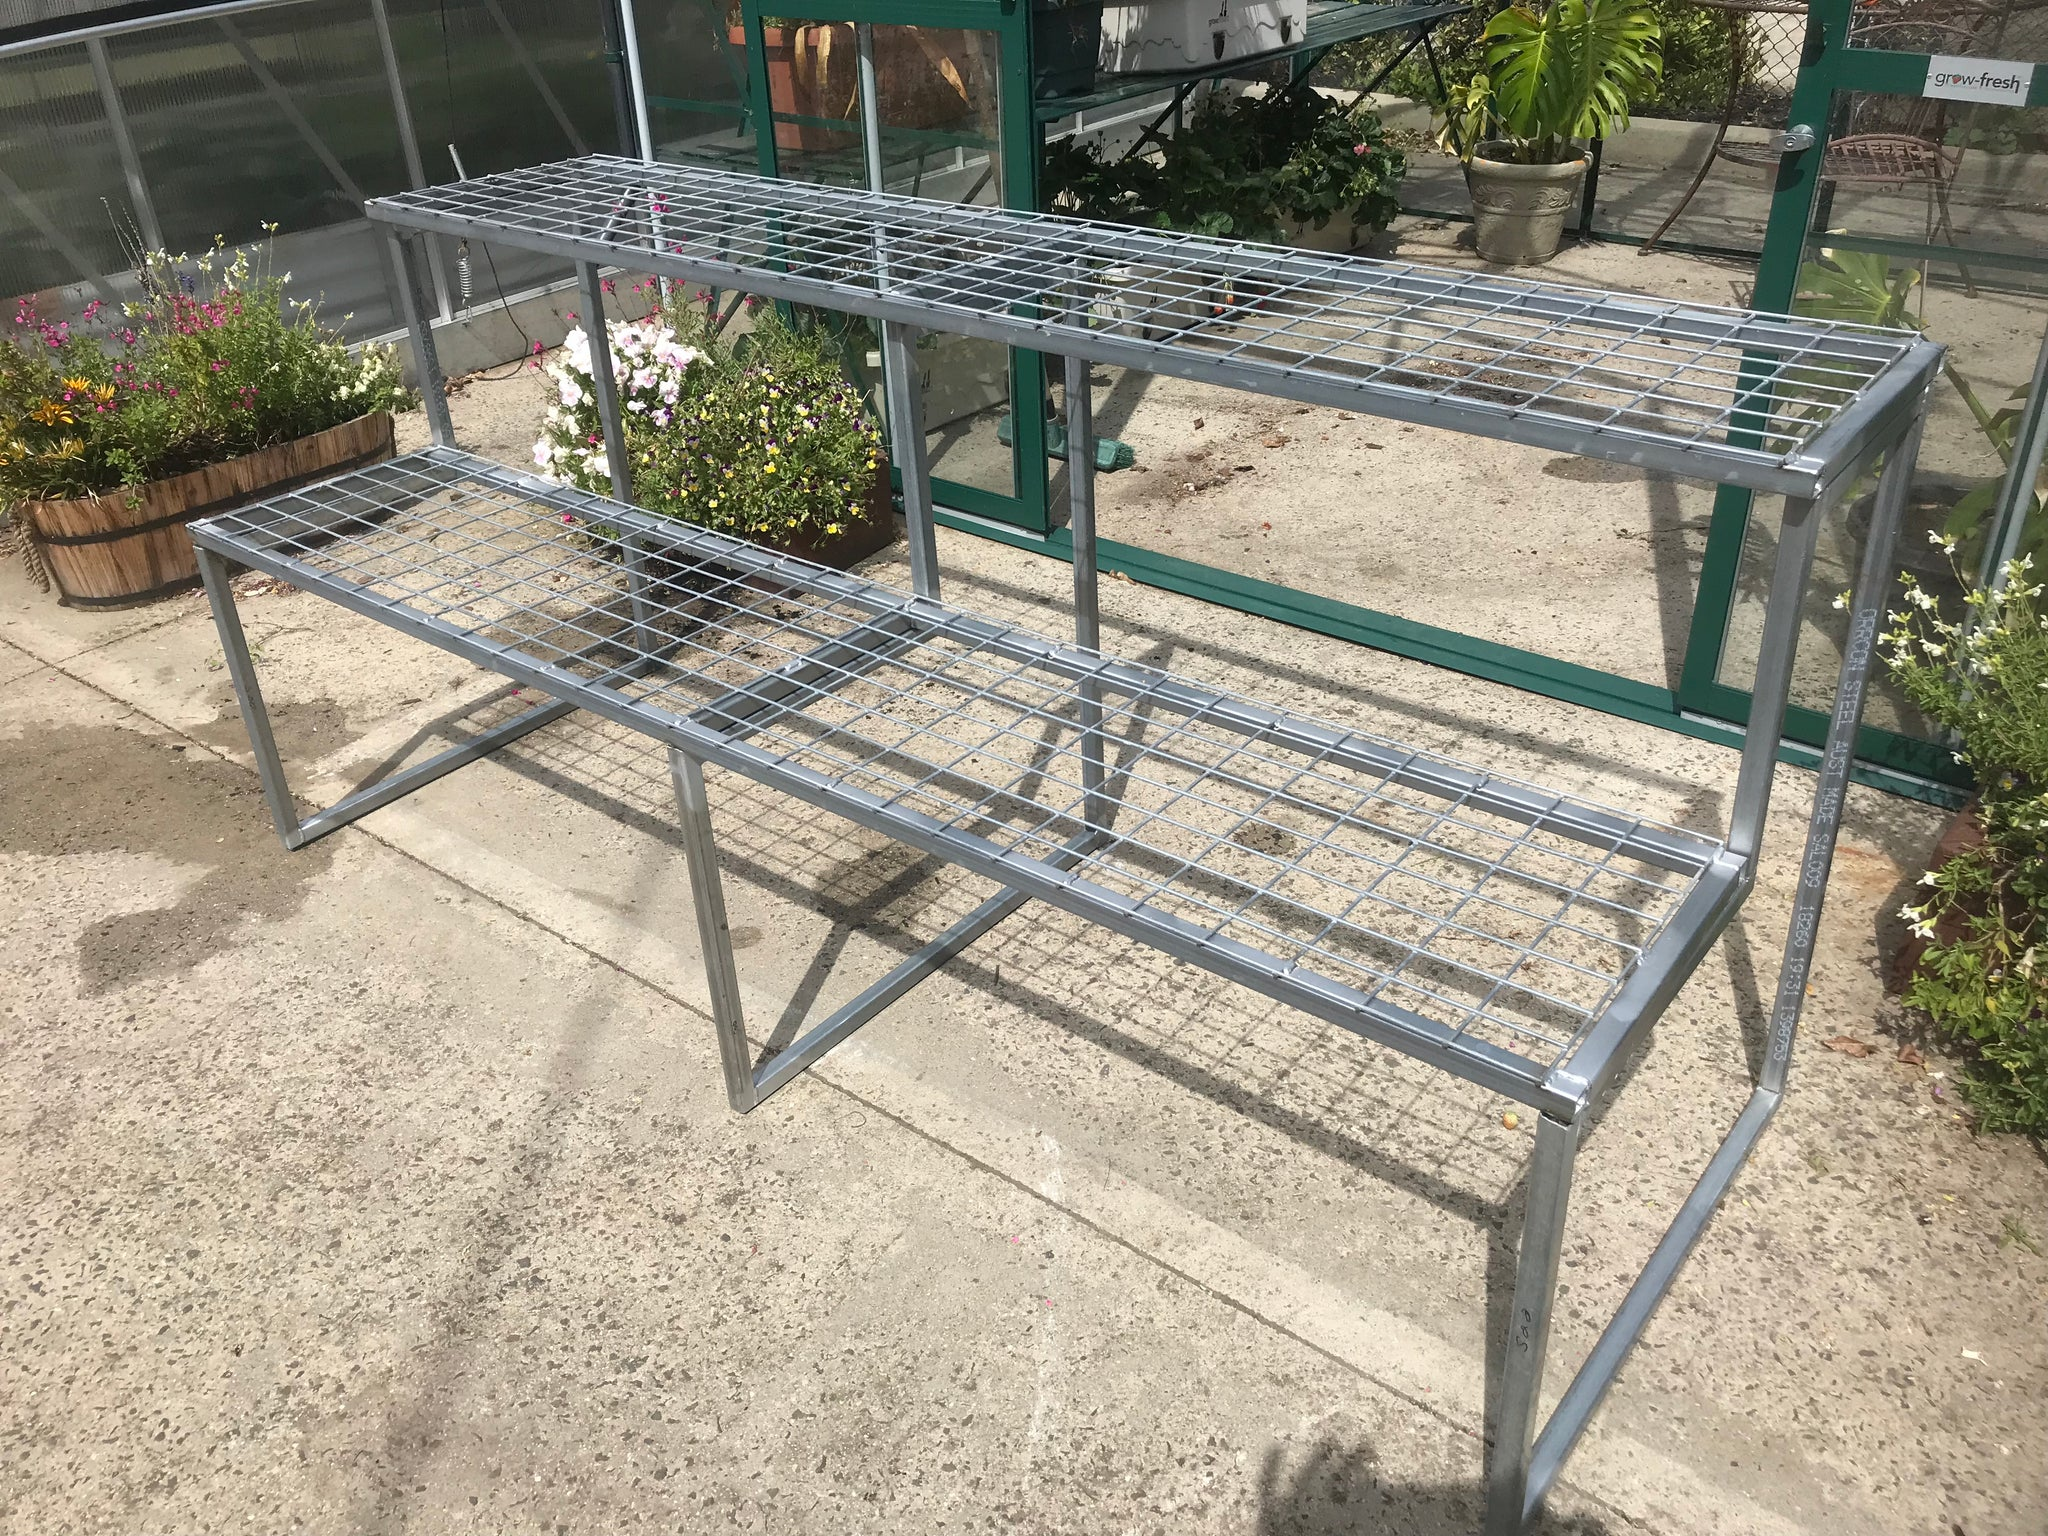 2-Tier Galvanised Mesh-Top Bench Kit